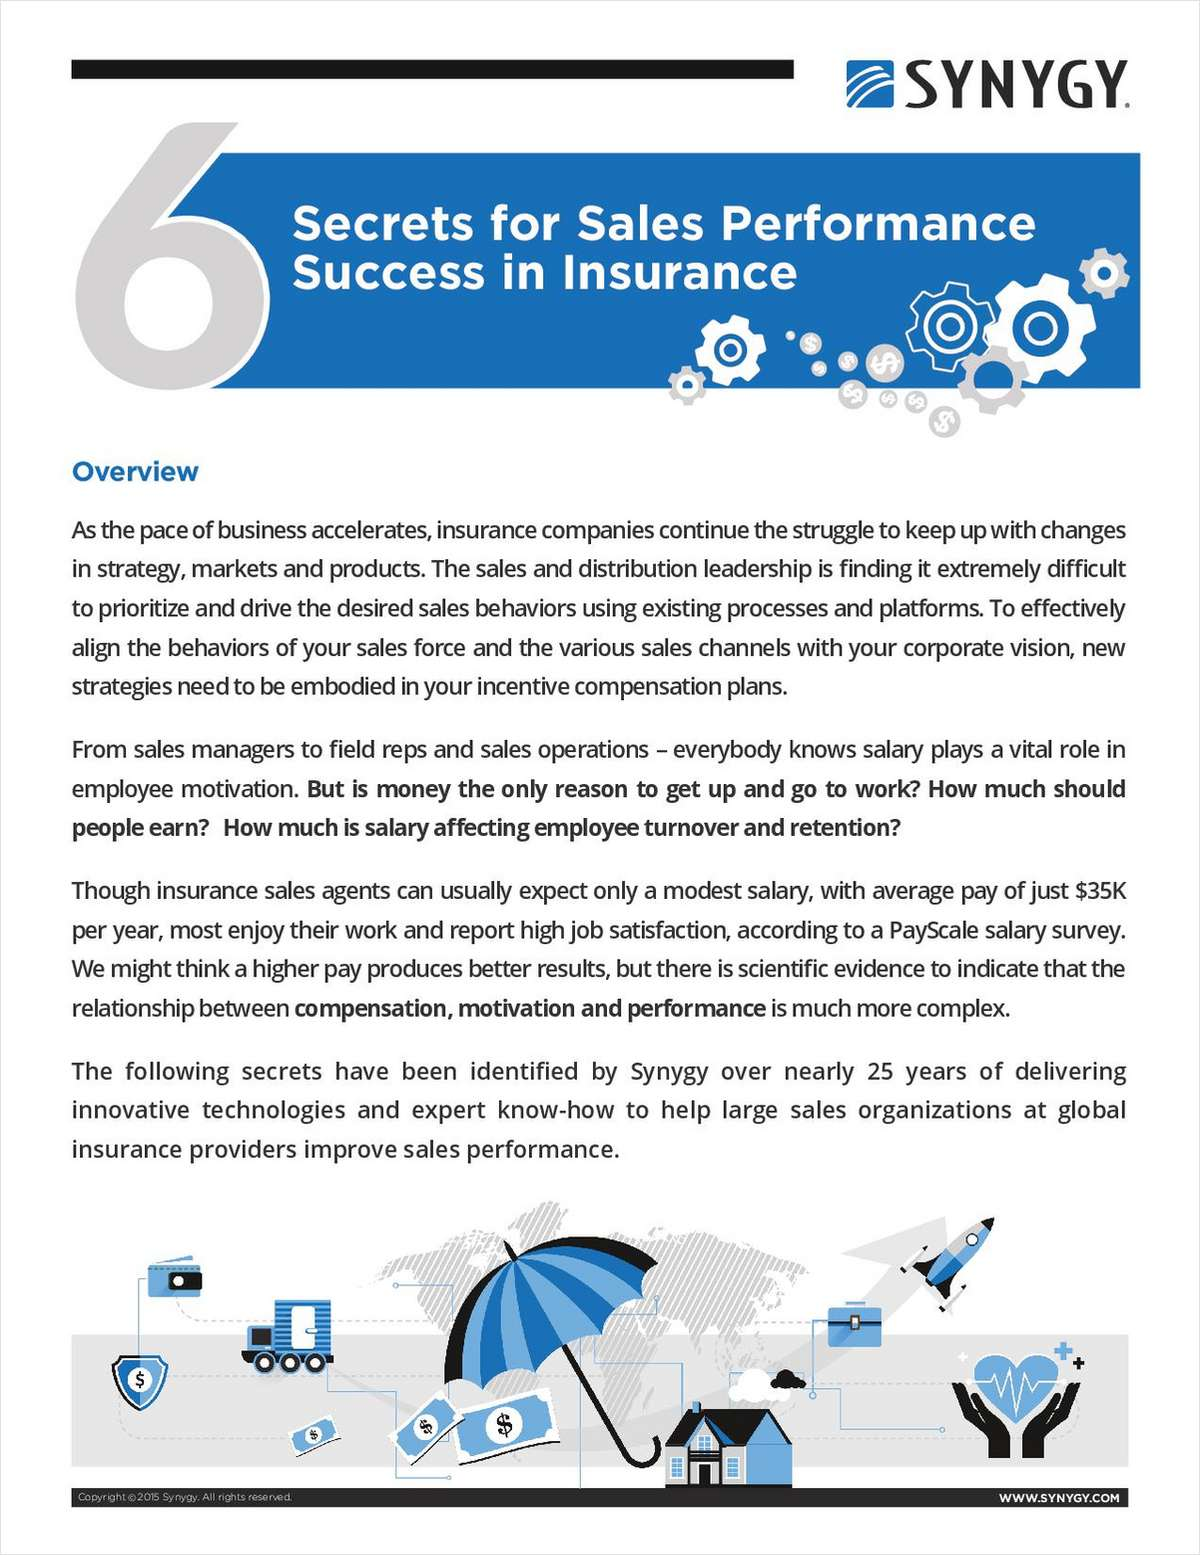 6 Secrets for Sales Performance Success in Insurance